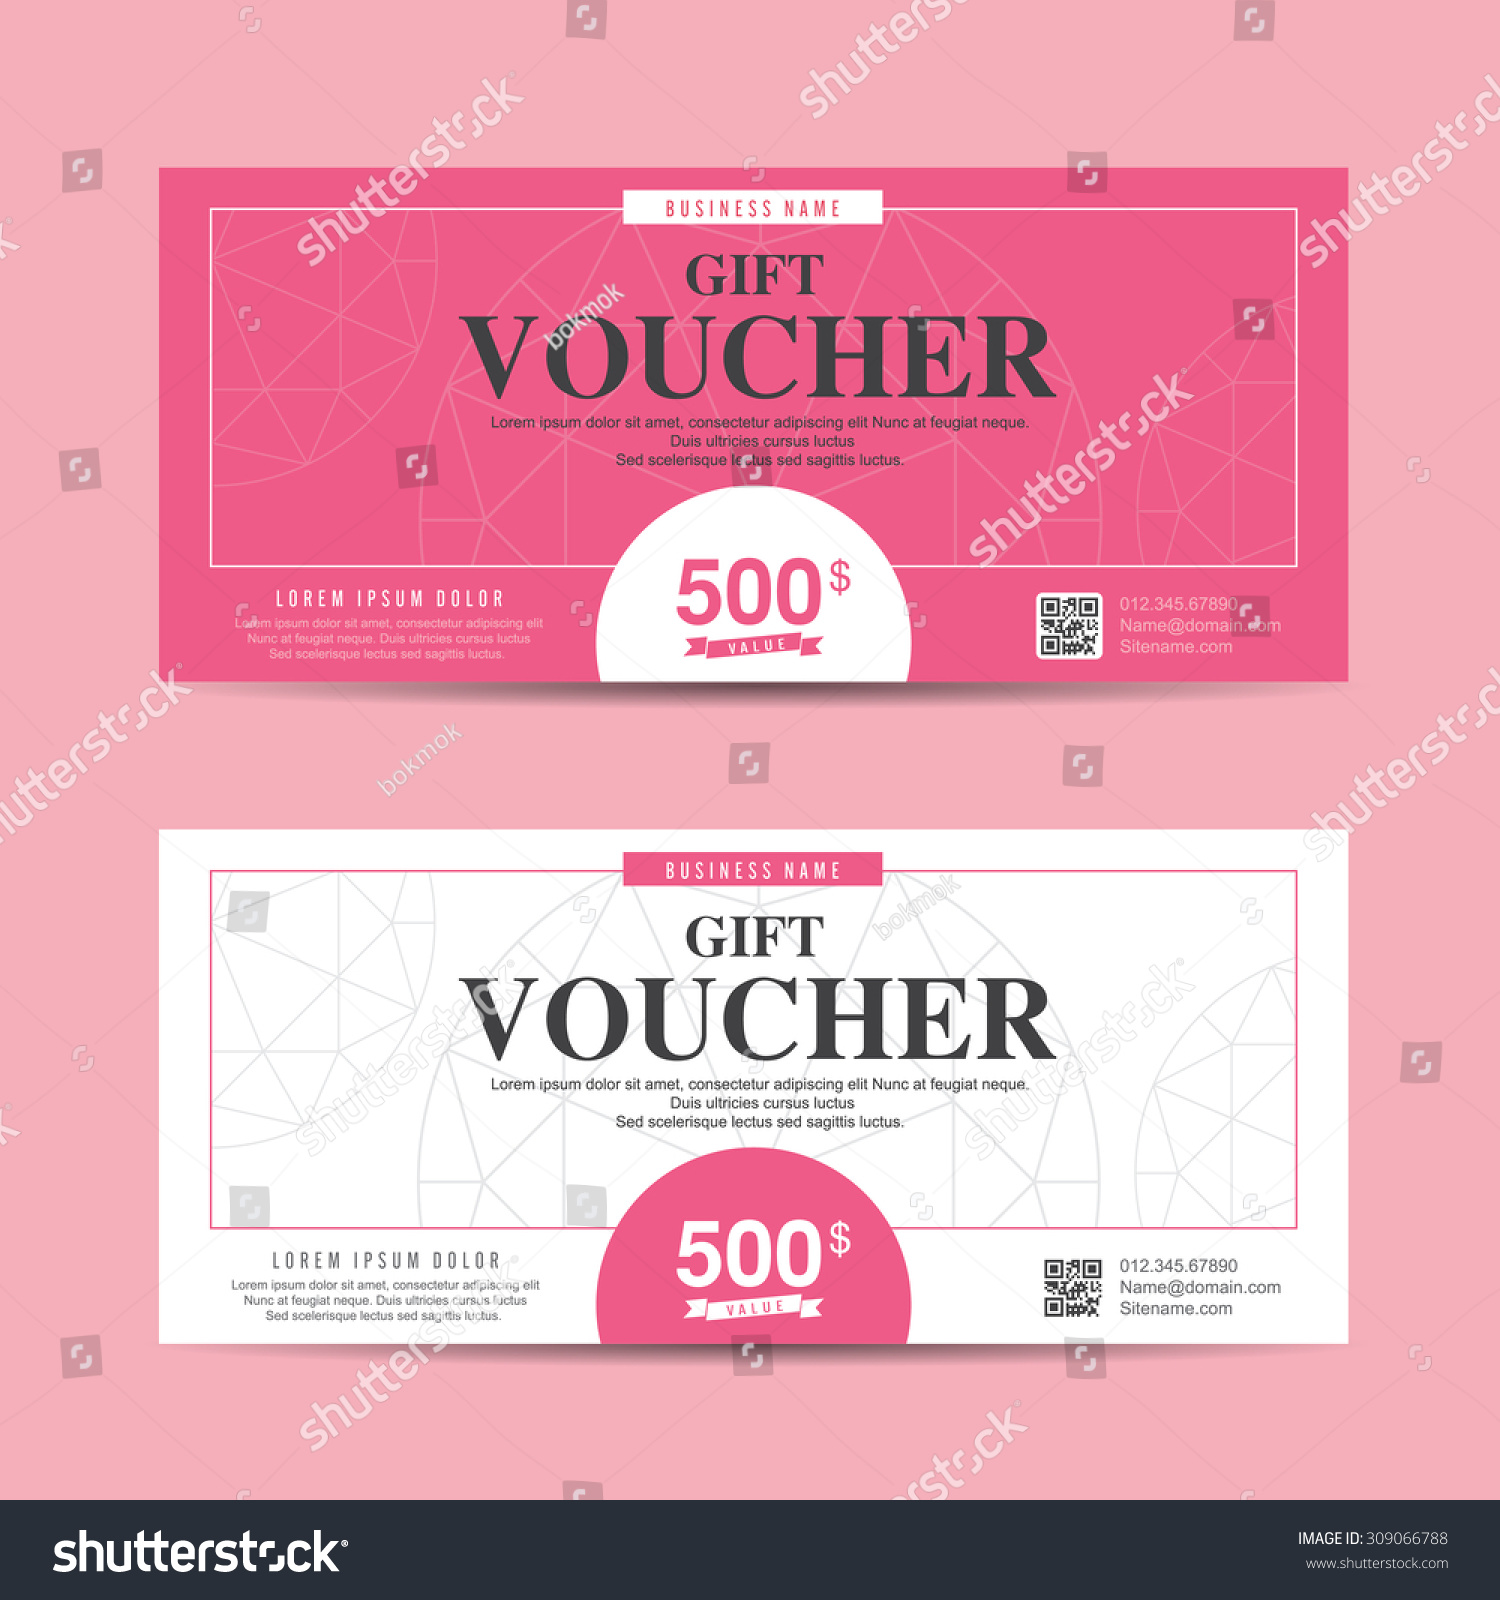 Royalty free vector illustrationgift voucher 309066788 stock vector illustrationgift voucher template with colorful patterncute gift voucher certificate coupon design 1betcityfo Images